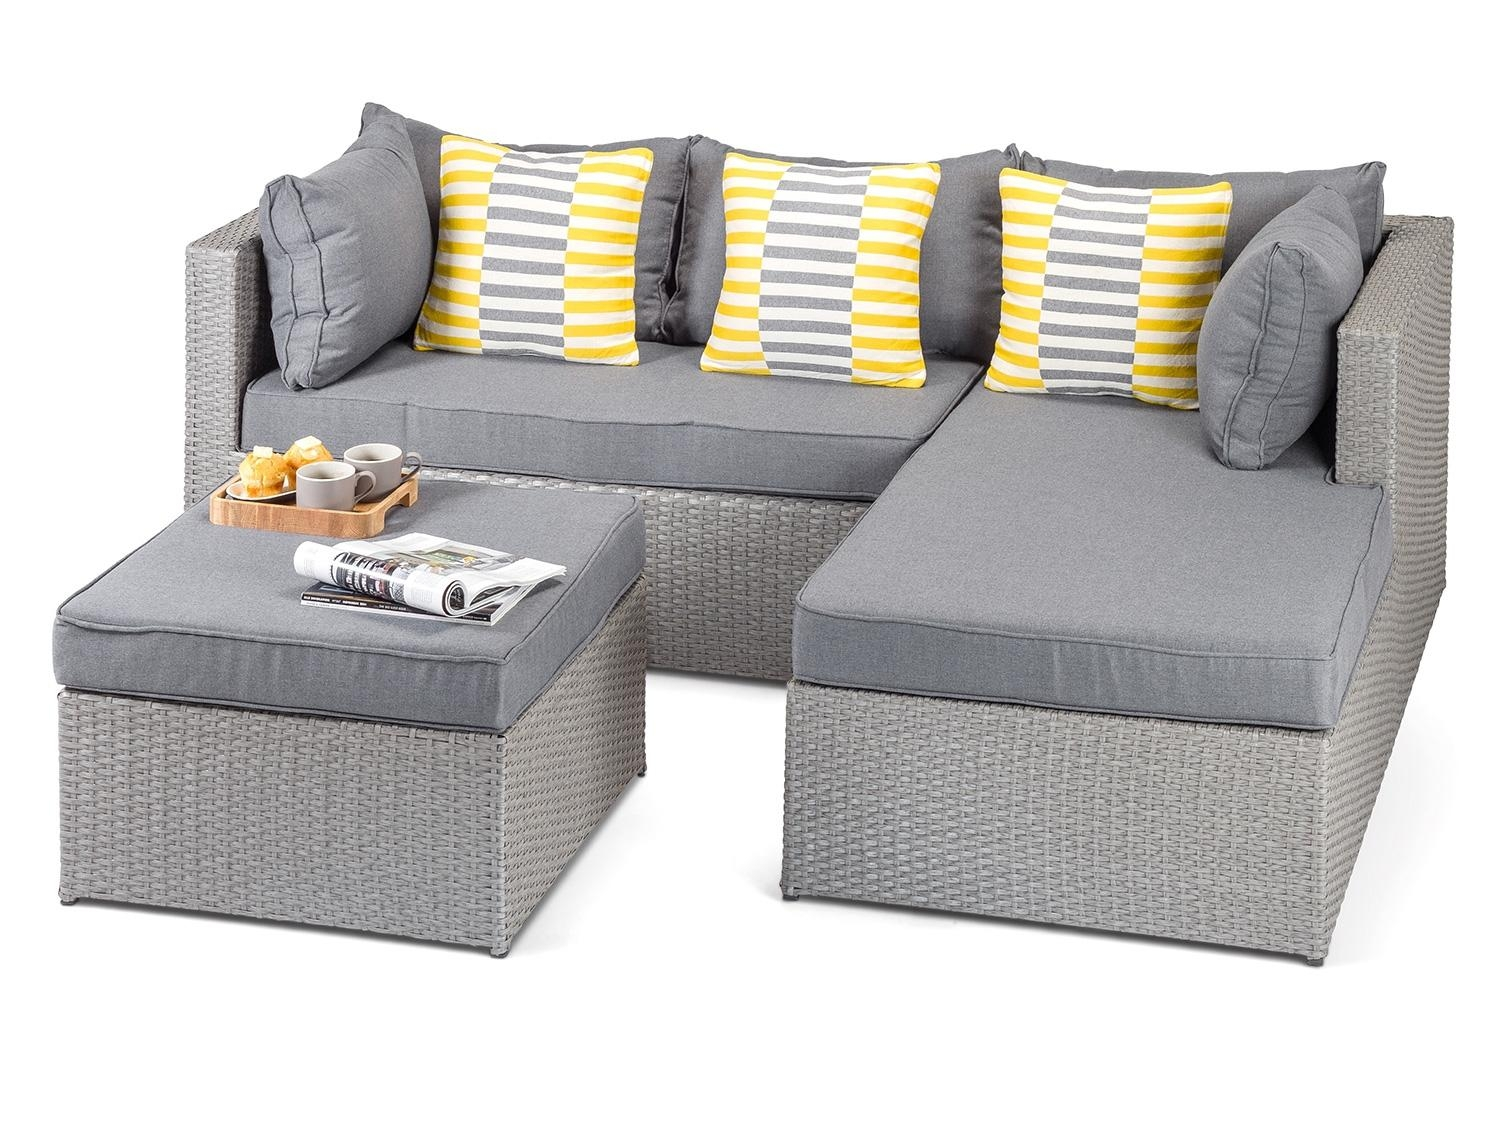 Calabria Grey Rattan Garden Sofa Throughout Modern Rattan Sofas (Image 4 of 23)